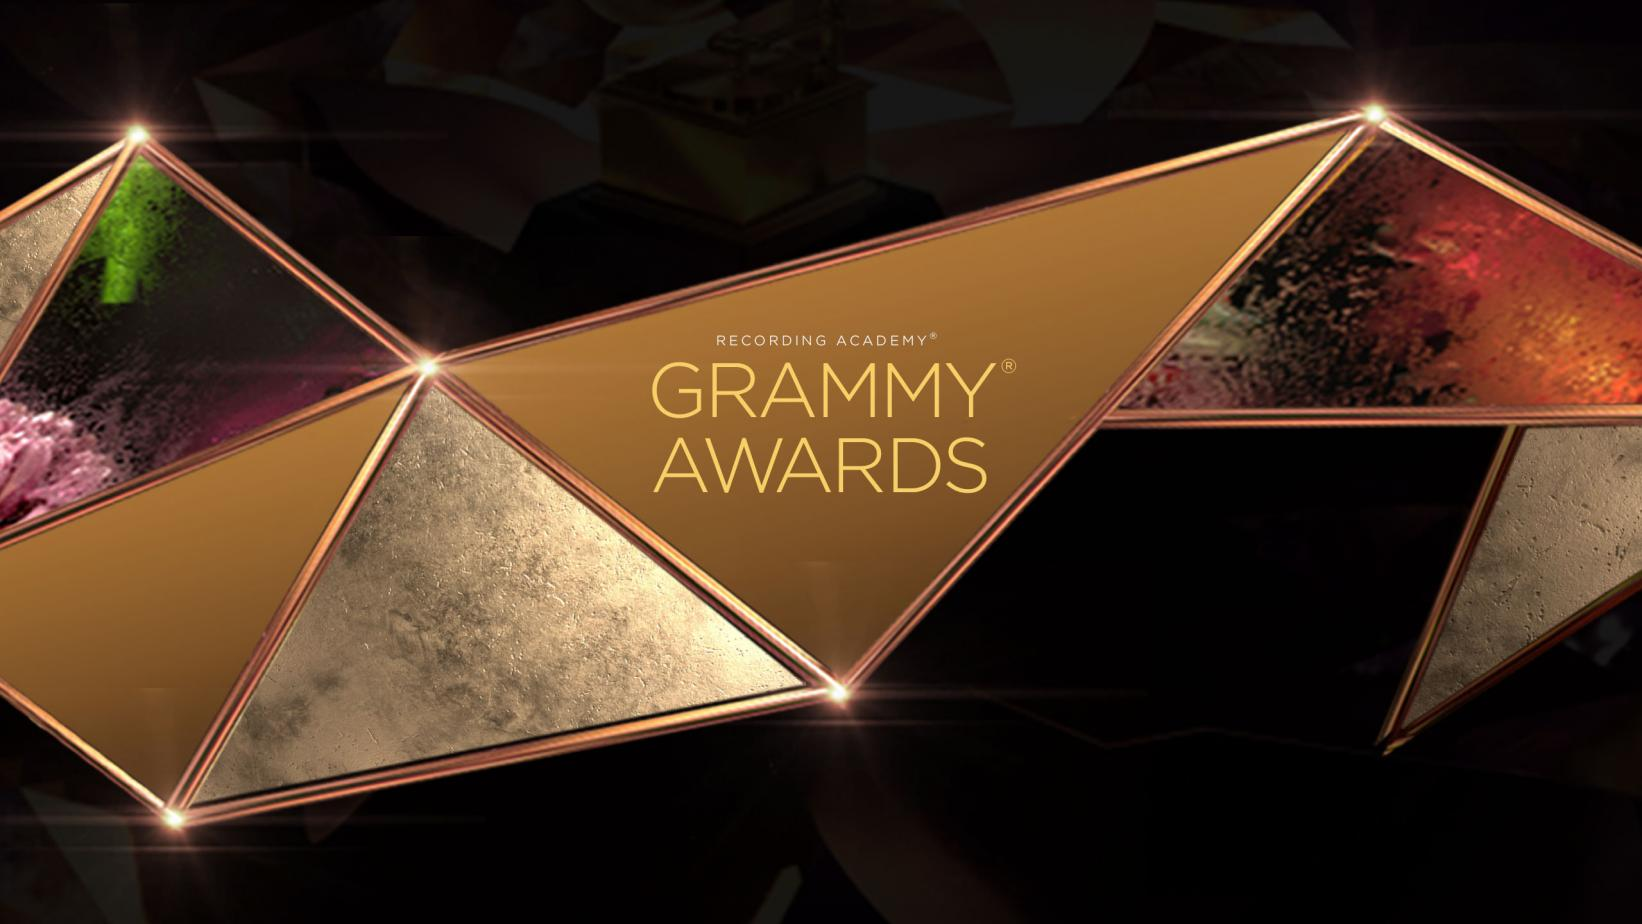 Grammy Awards postponed to March 14 due to Covid-19